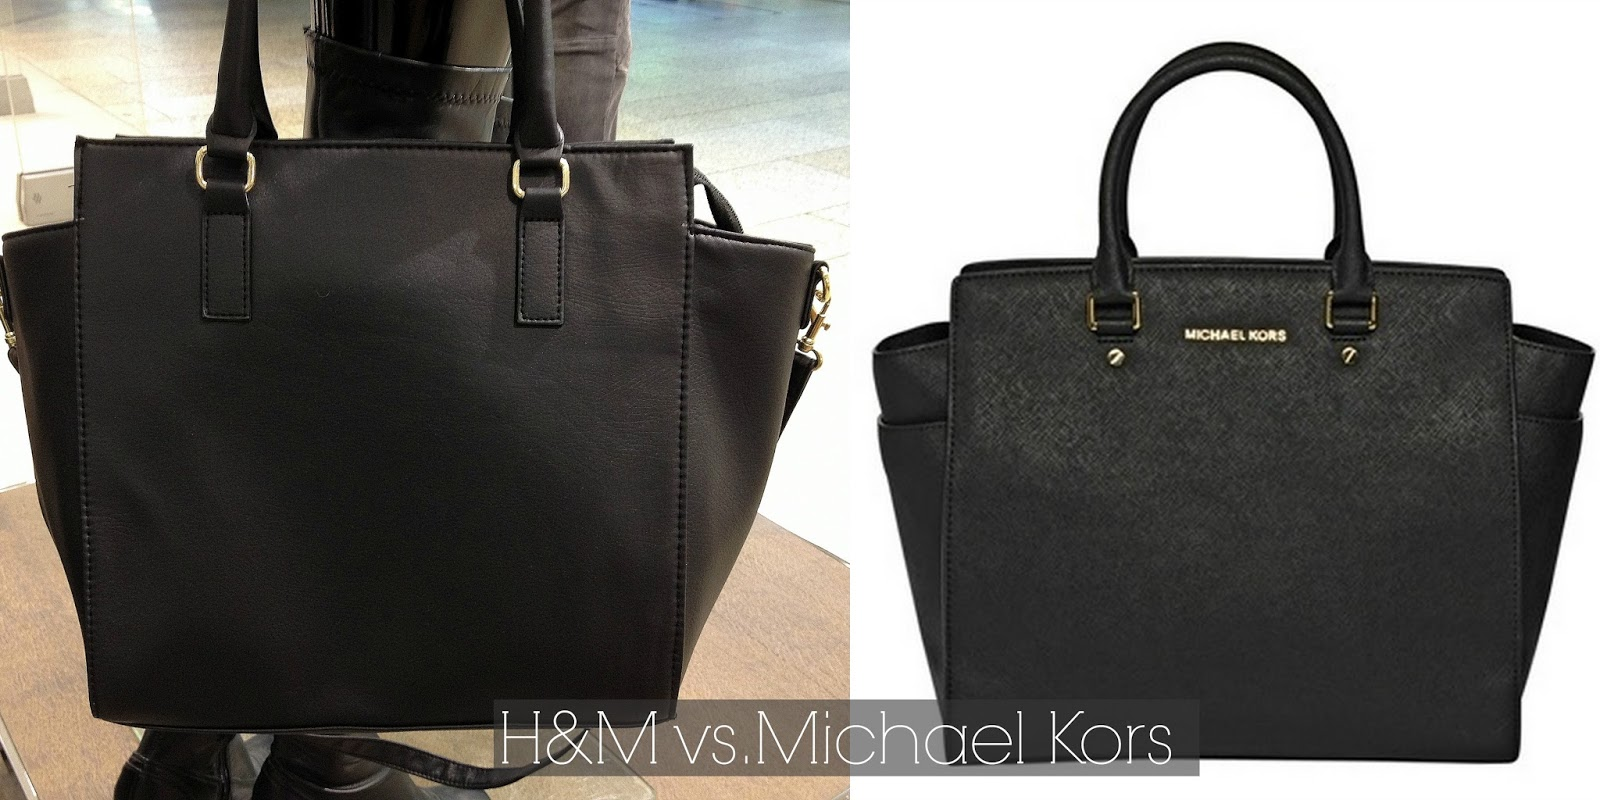 michael kors tasche fake oder original. Black Bedroom Furniture Sets. Home Design Ideas